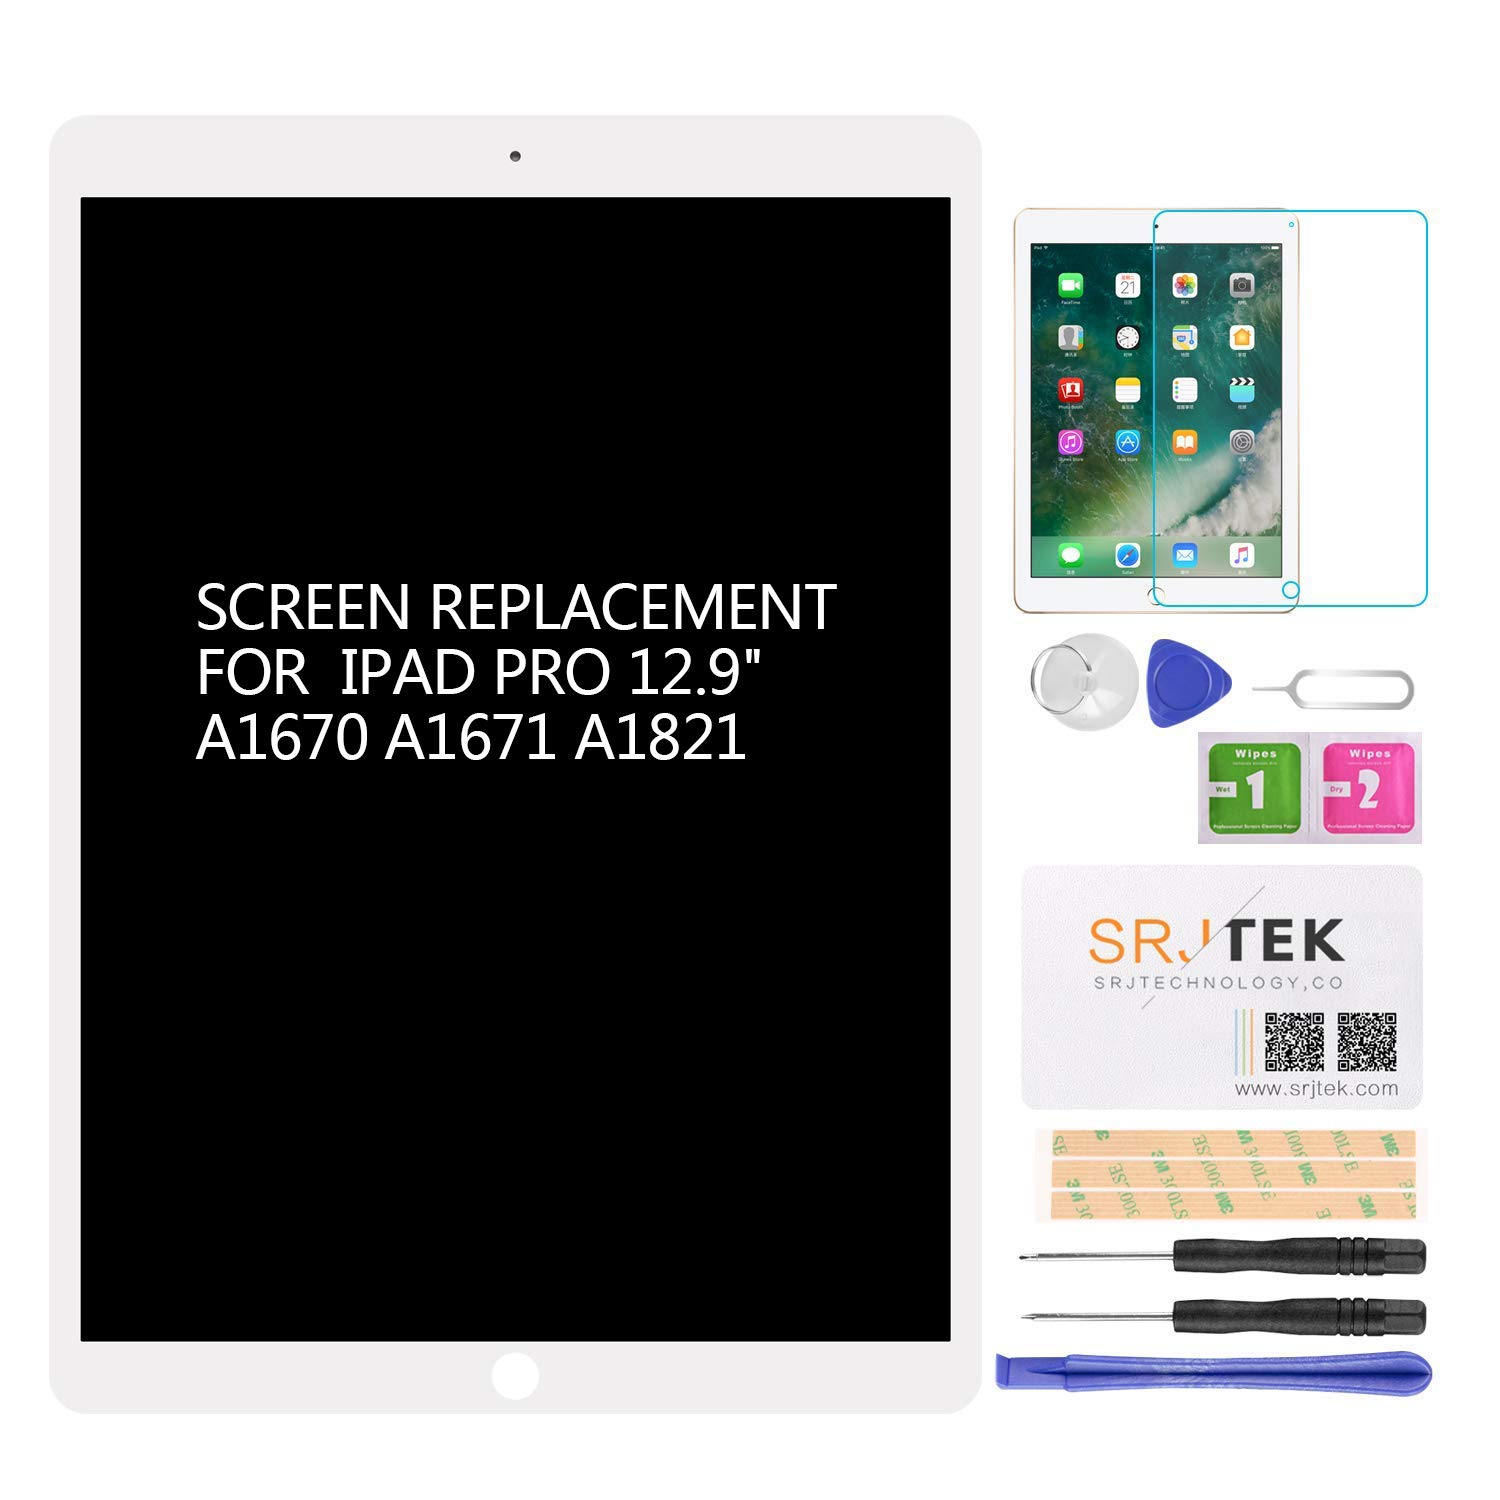 for iPad Pro 12.9 A1670 A1671 A1821 Screen Replacement LCD Display Touch Screen Digitizer + IC Connector PCB Flex Cable Assembly (2017) (White) by SRJTEK (Image #1)